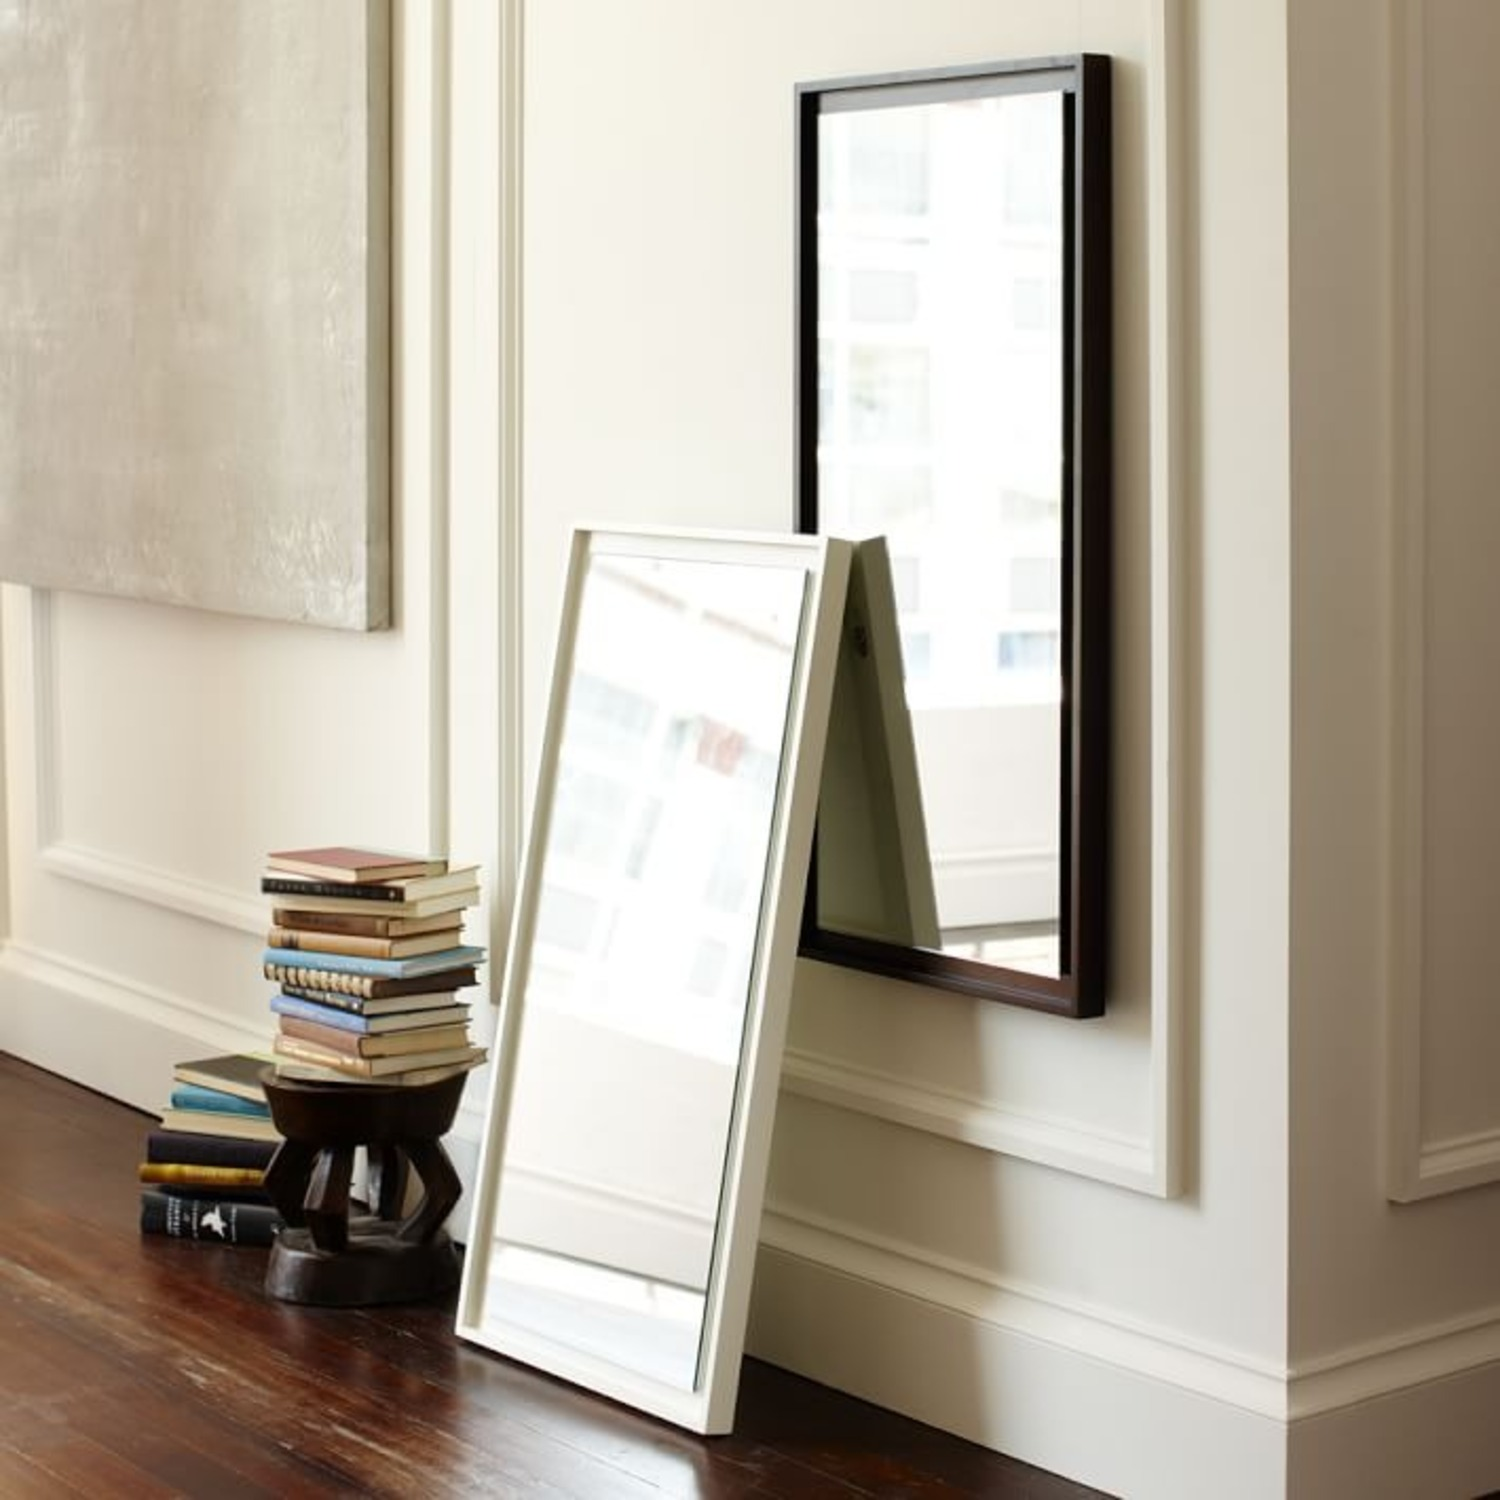 West Elm Floating Wood Wall Mirror, White Lacquer - image-3